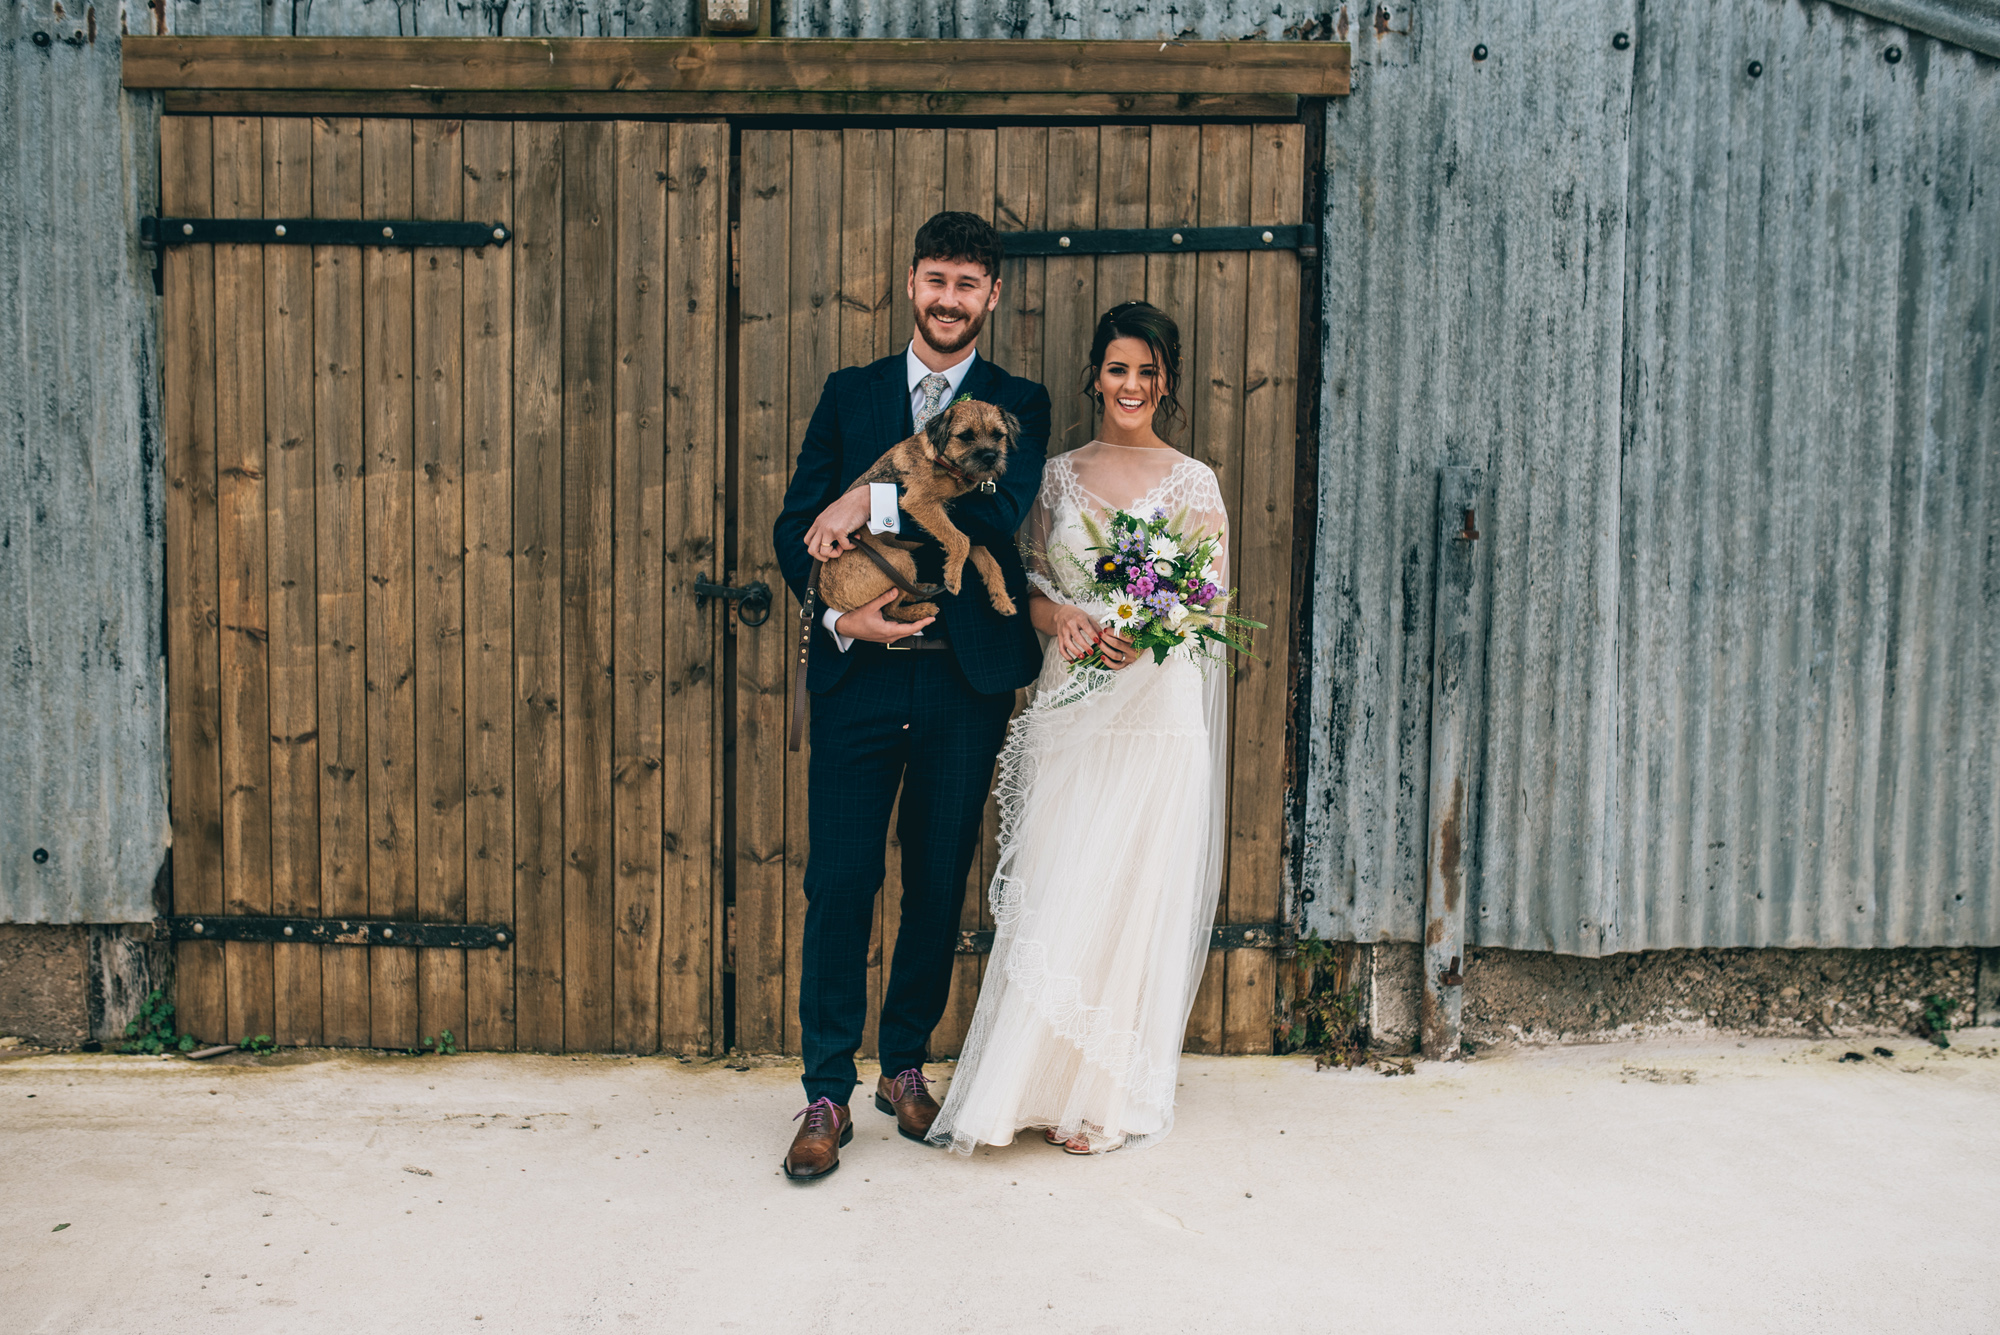 Kate-Beaumont-Sheffield-Lucy-Bohemian-Lace-Dress-Barn-Wedding-Cumbria-17.jpg